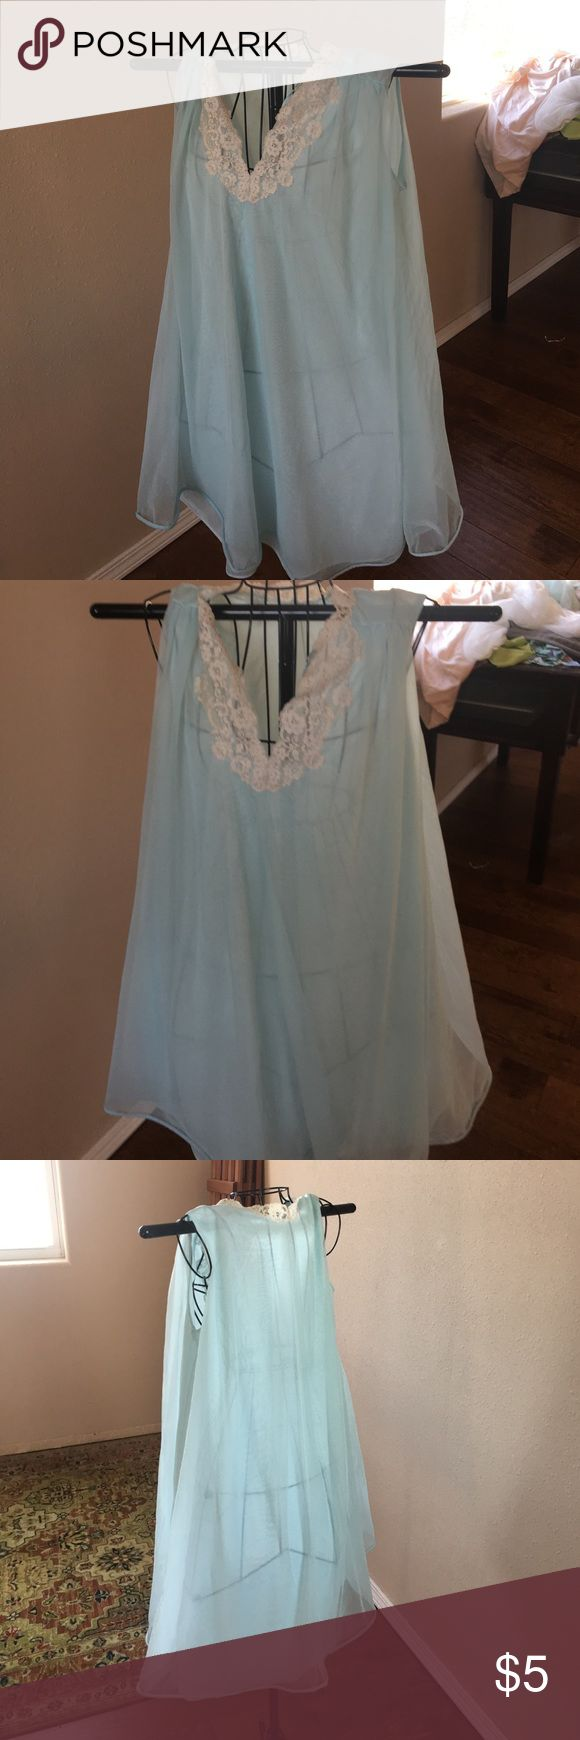 Light blue Vintage Nightie s/m So sheer and pretty, no label so cute and filmy with a touch of Lace. unknown Intimates & Sleepwear Chemises & Slips